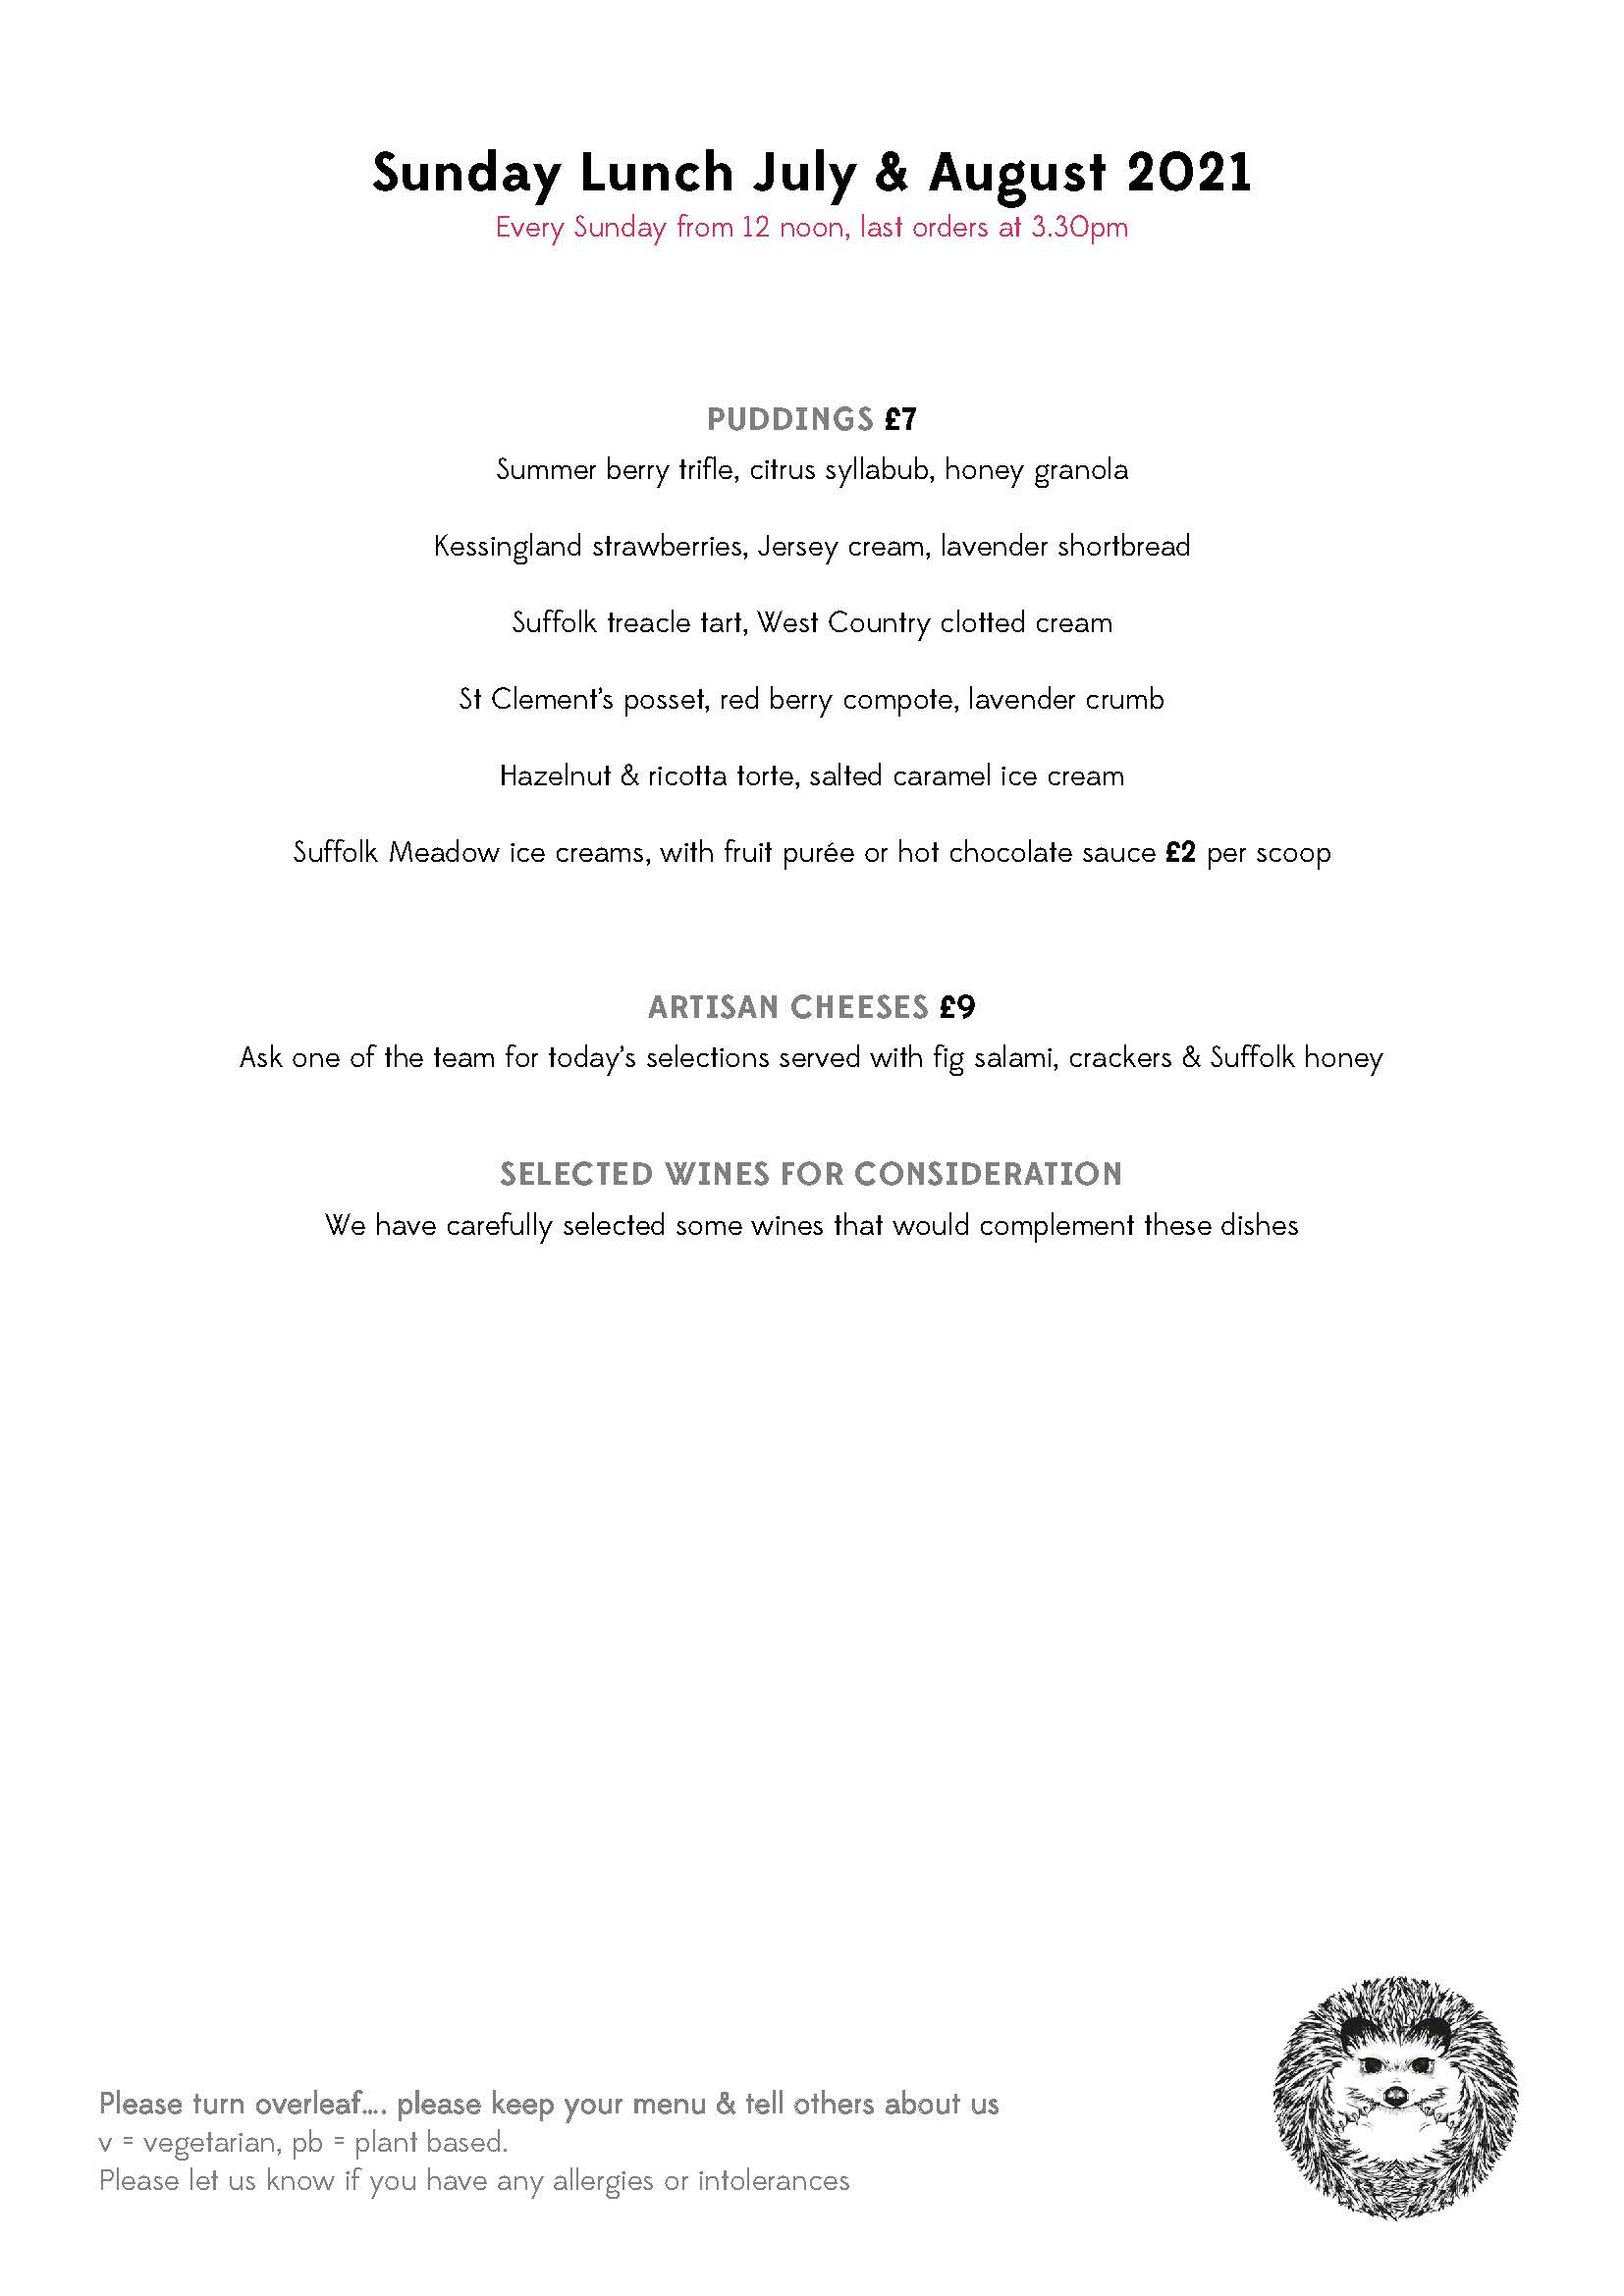 Sunday Lunch Menu July August 2